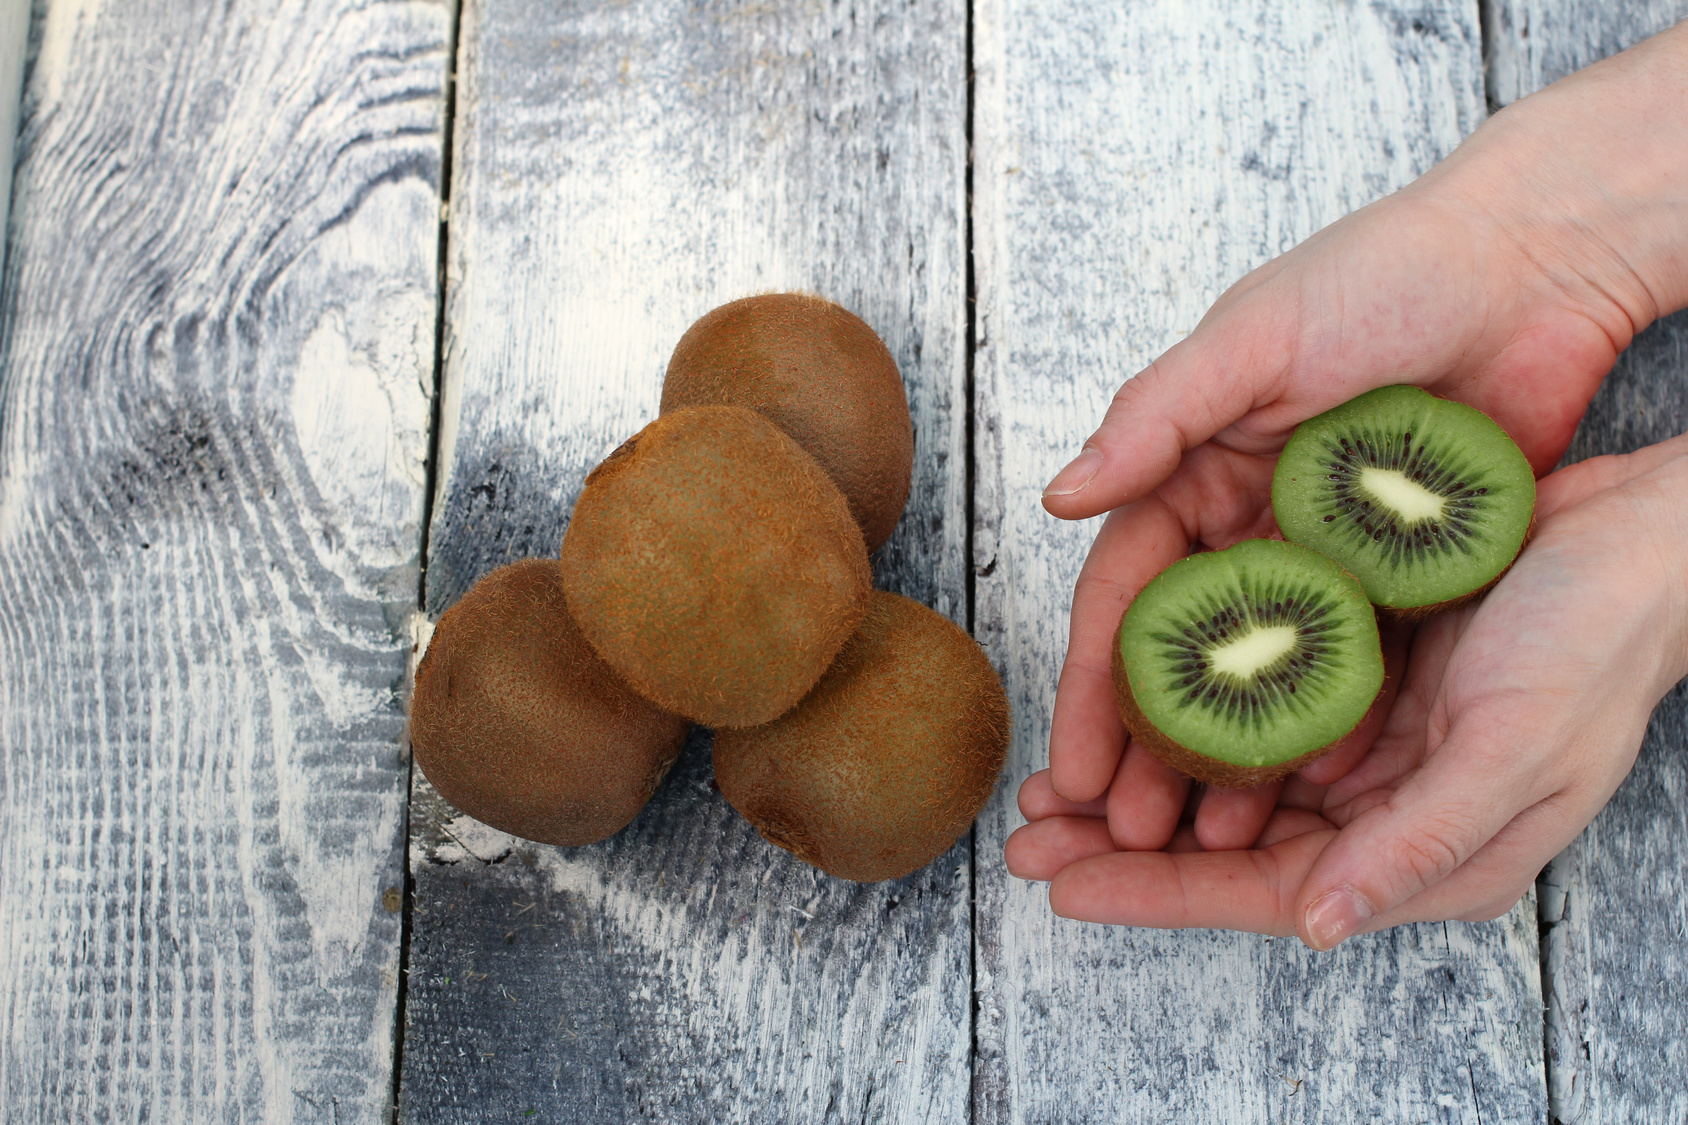 Kiwi fruits: how to select and store them?